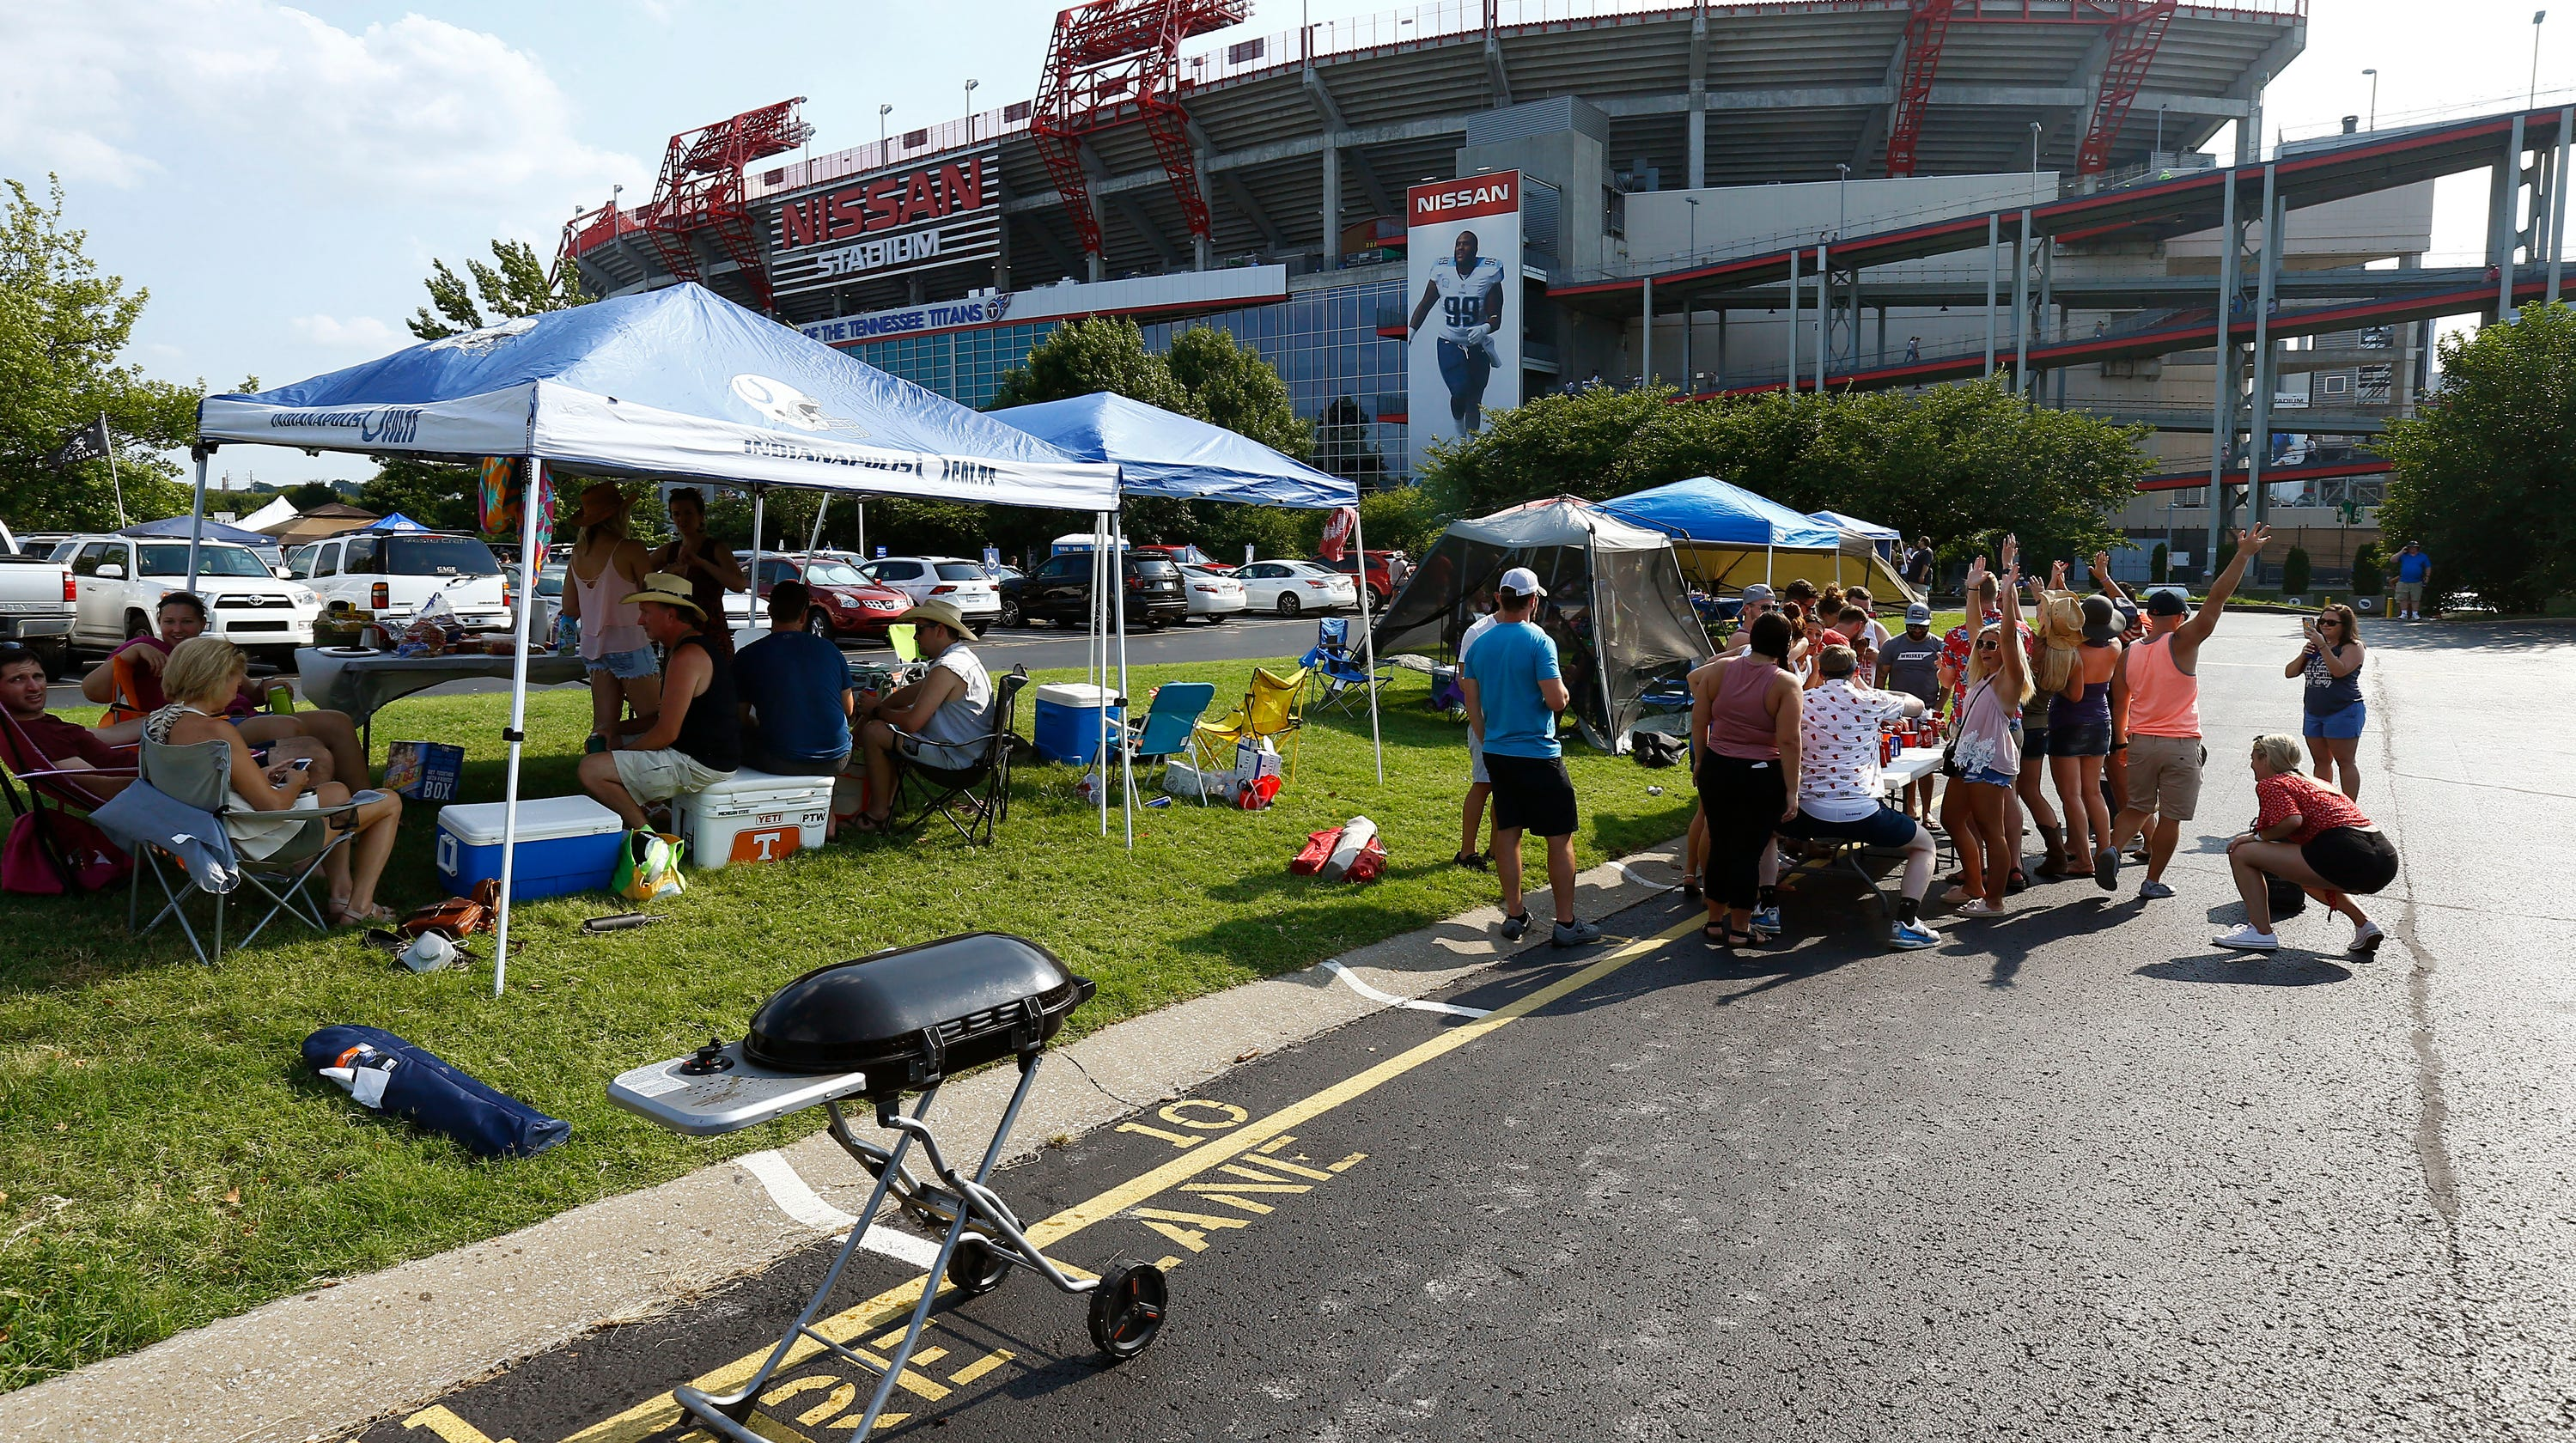 Nissan Stadium, home of the Tennessee Titans and Nashville SC, transitioning to cashless payment